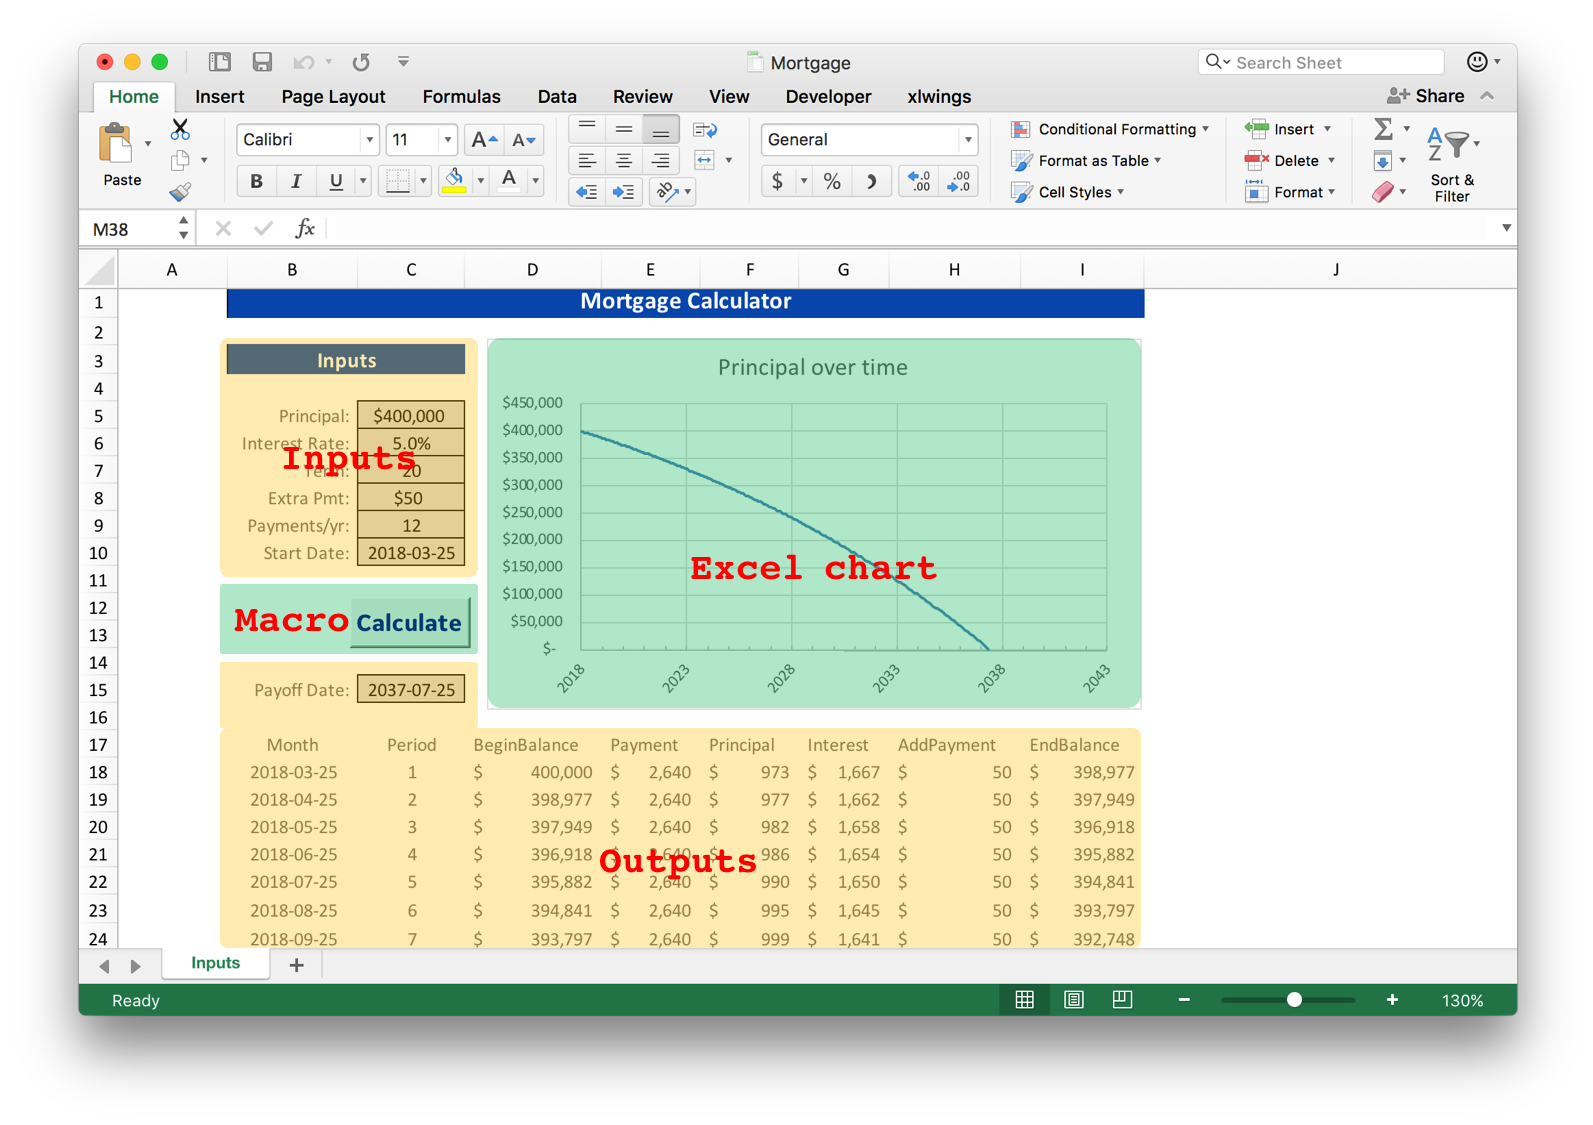 Workbooks workbook python : xlwings: Use Python and Excel to Calculate Your Mortgage | Matthew ...